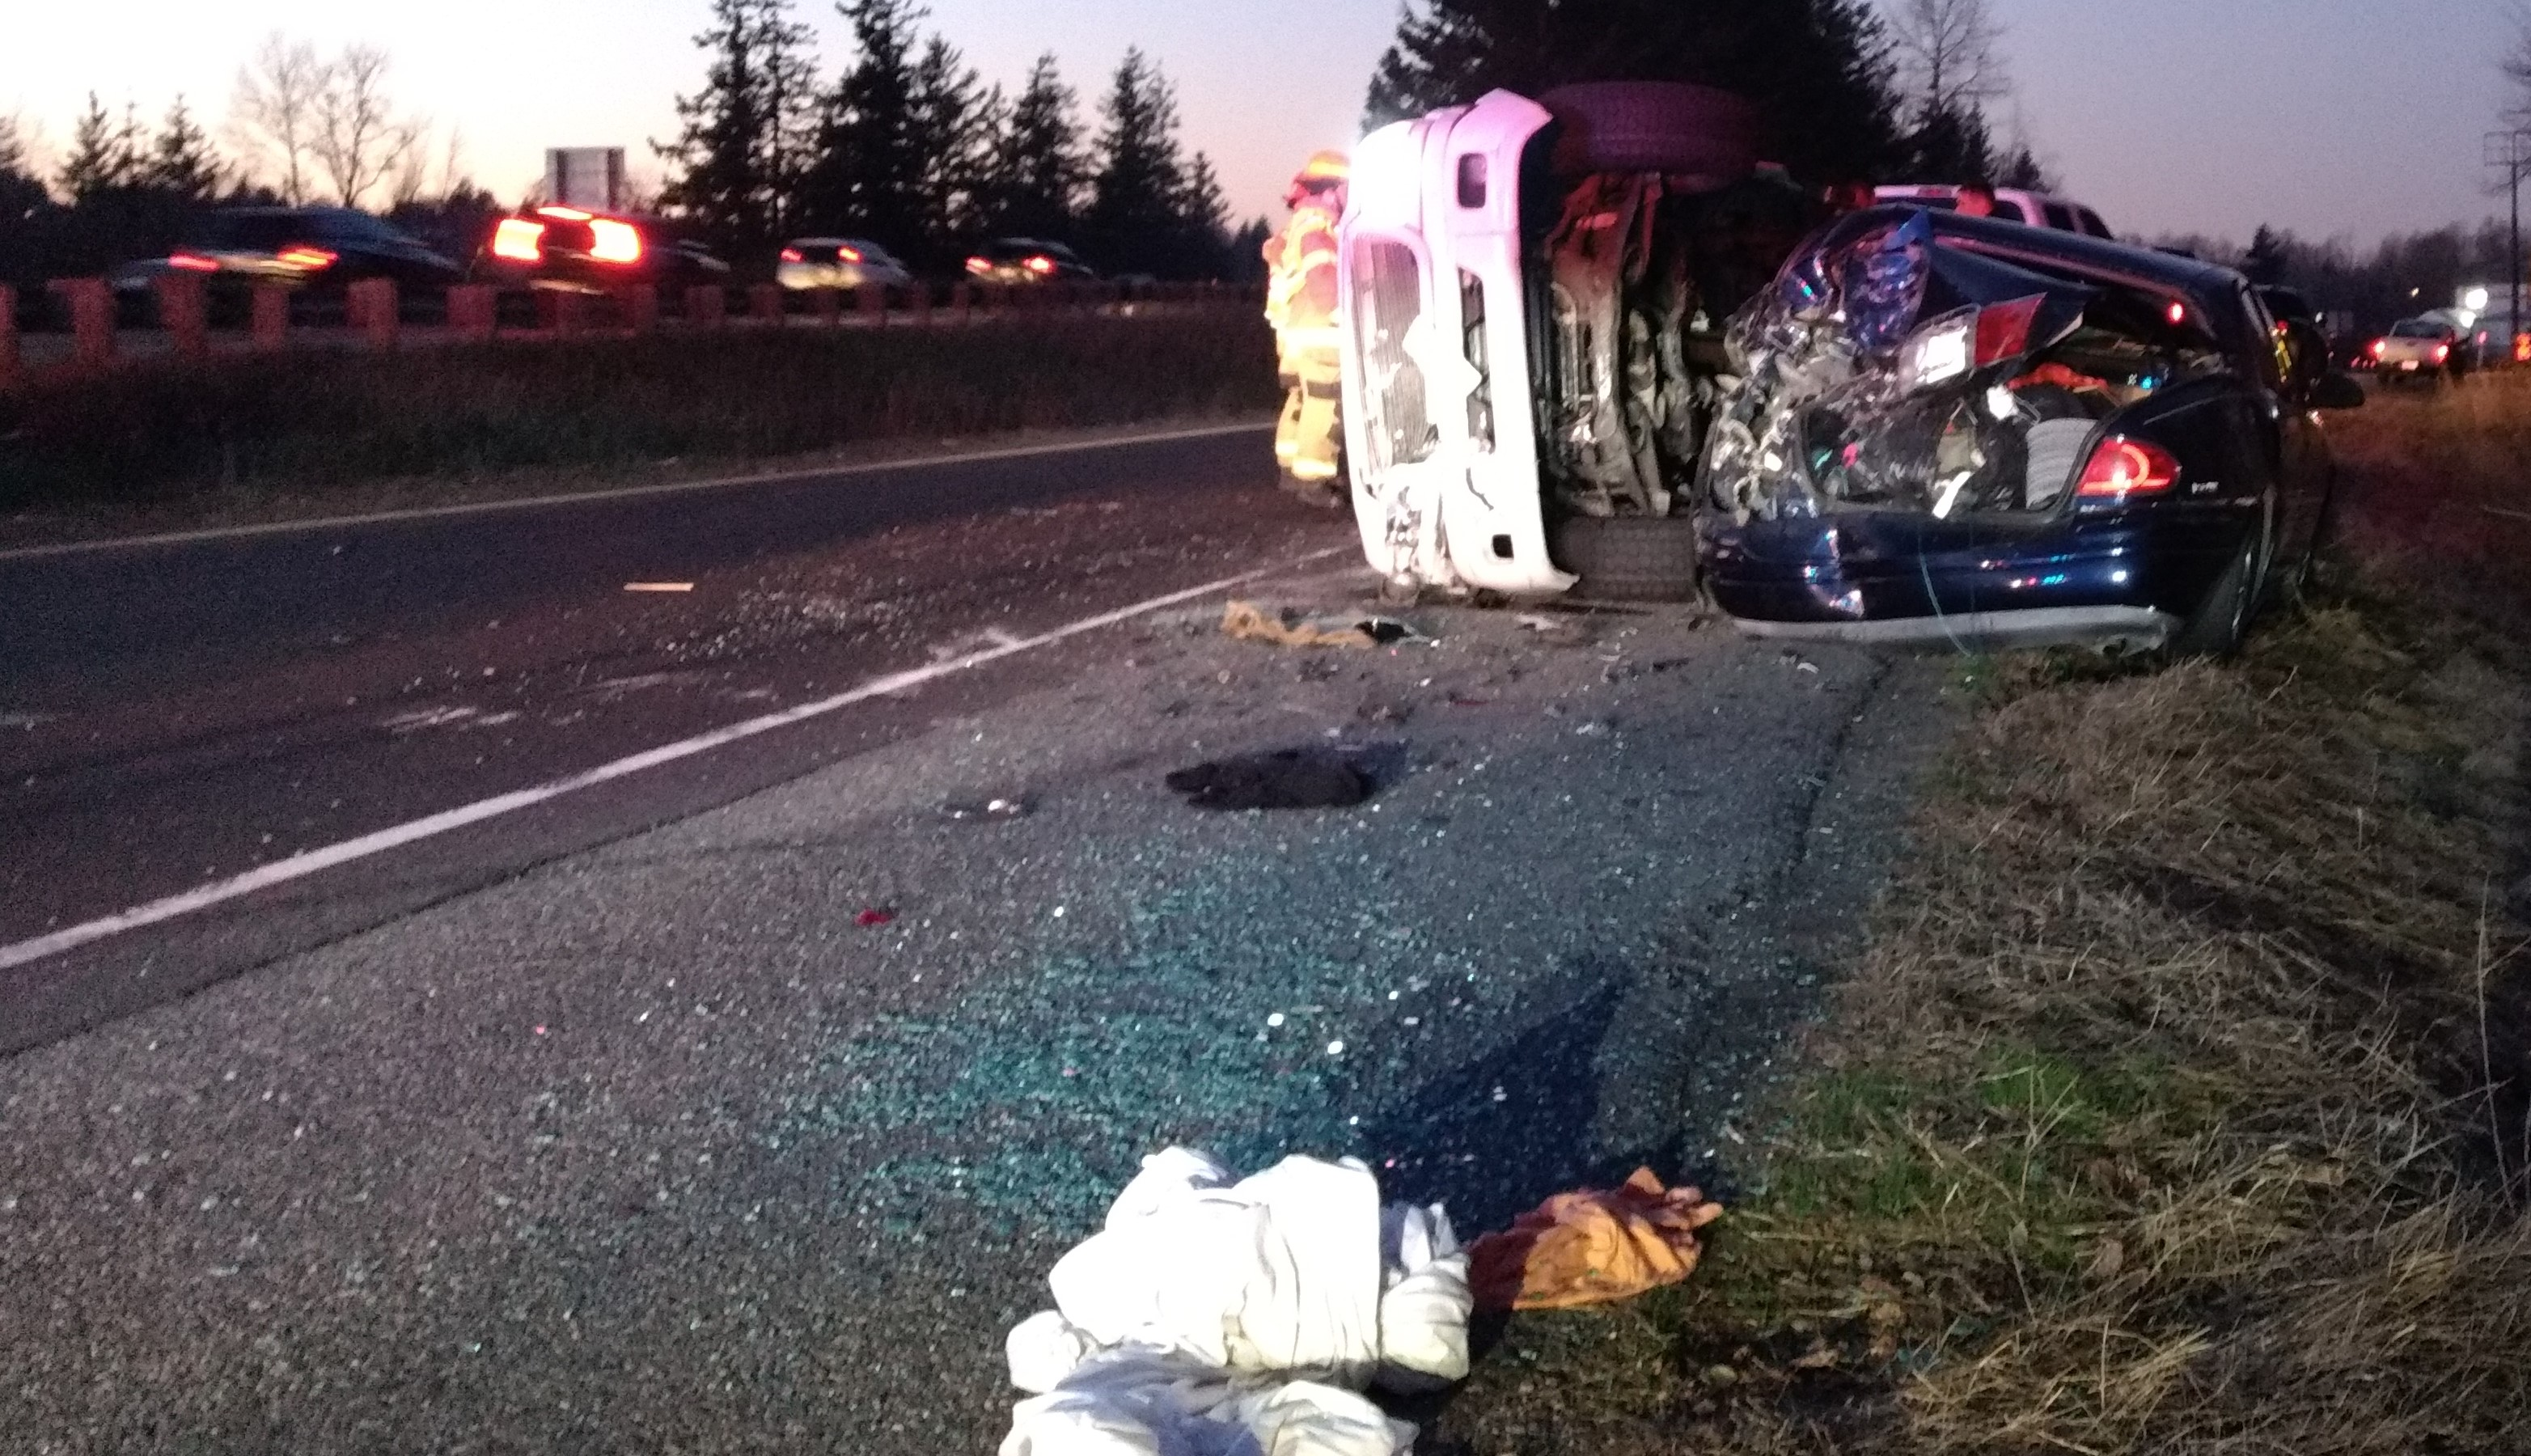 Scene of a 2-vehicle rollover crash on the southbound I-5 off-ramp at Portal Way (November 29, 2019). Photo: My Ferndale News